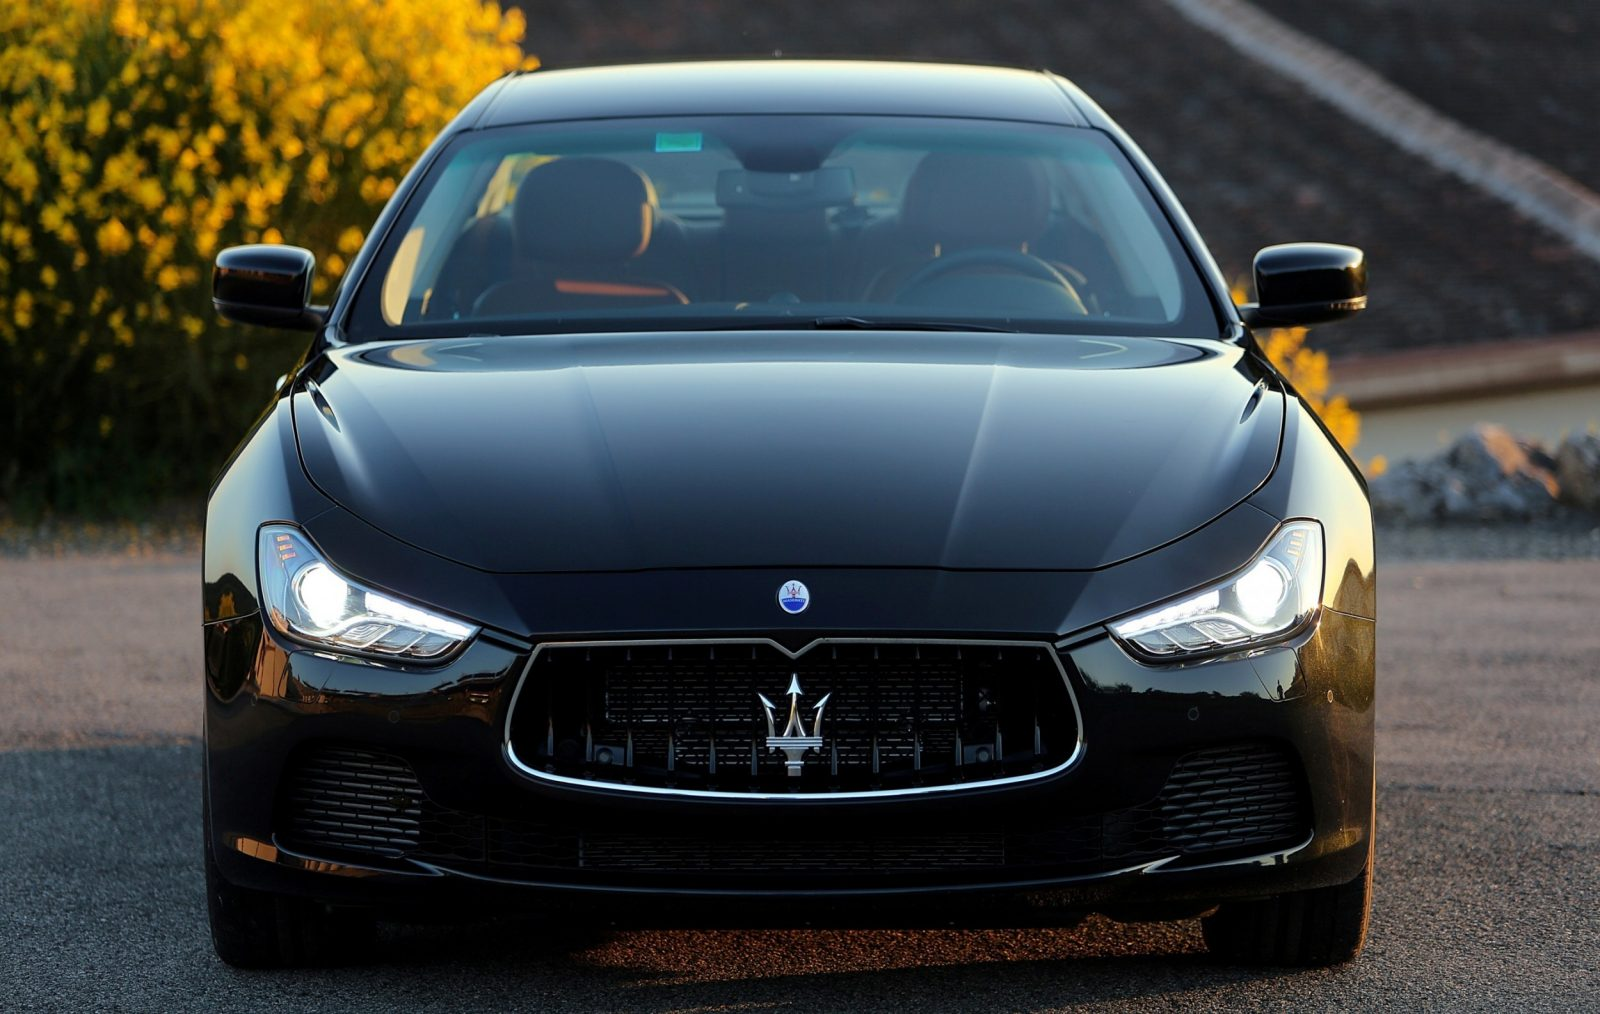 2014 Maserati Ghibli - Latest Official Photos 15